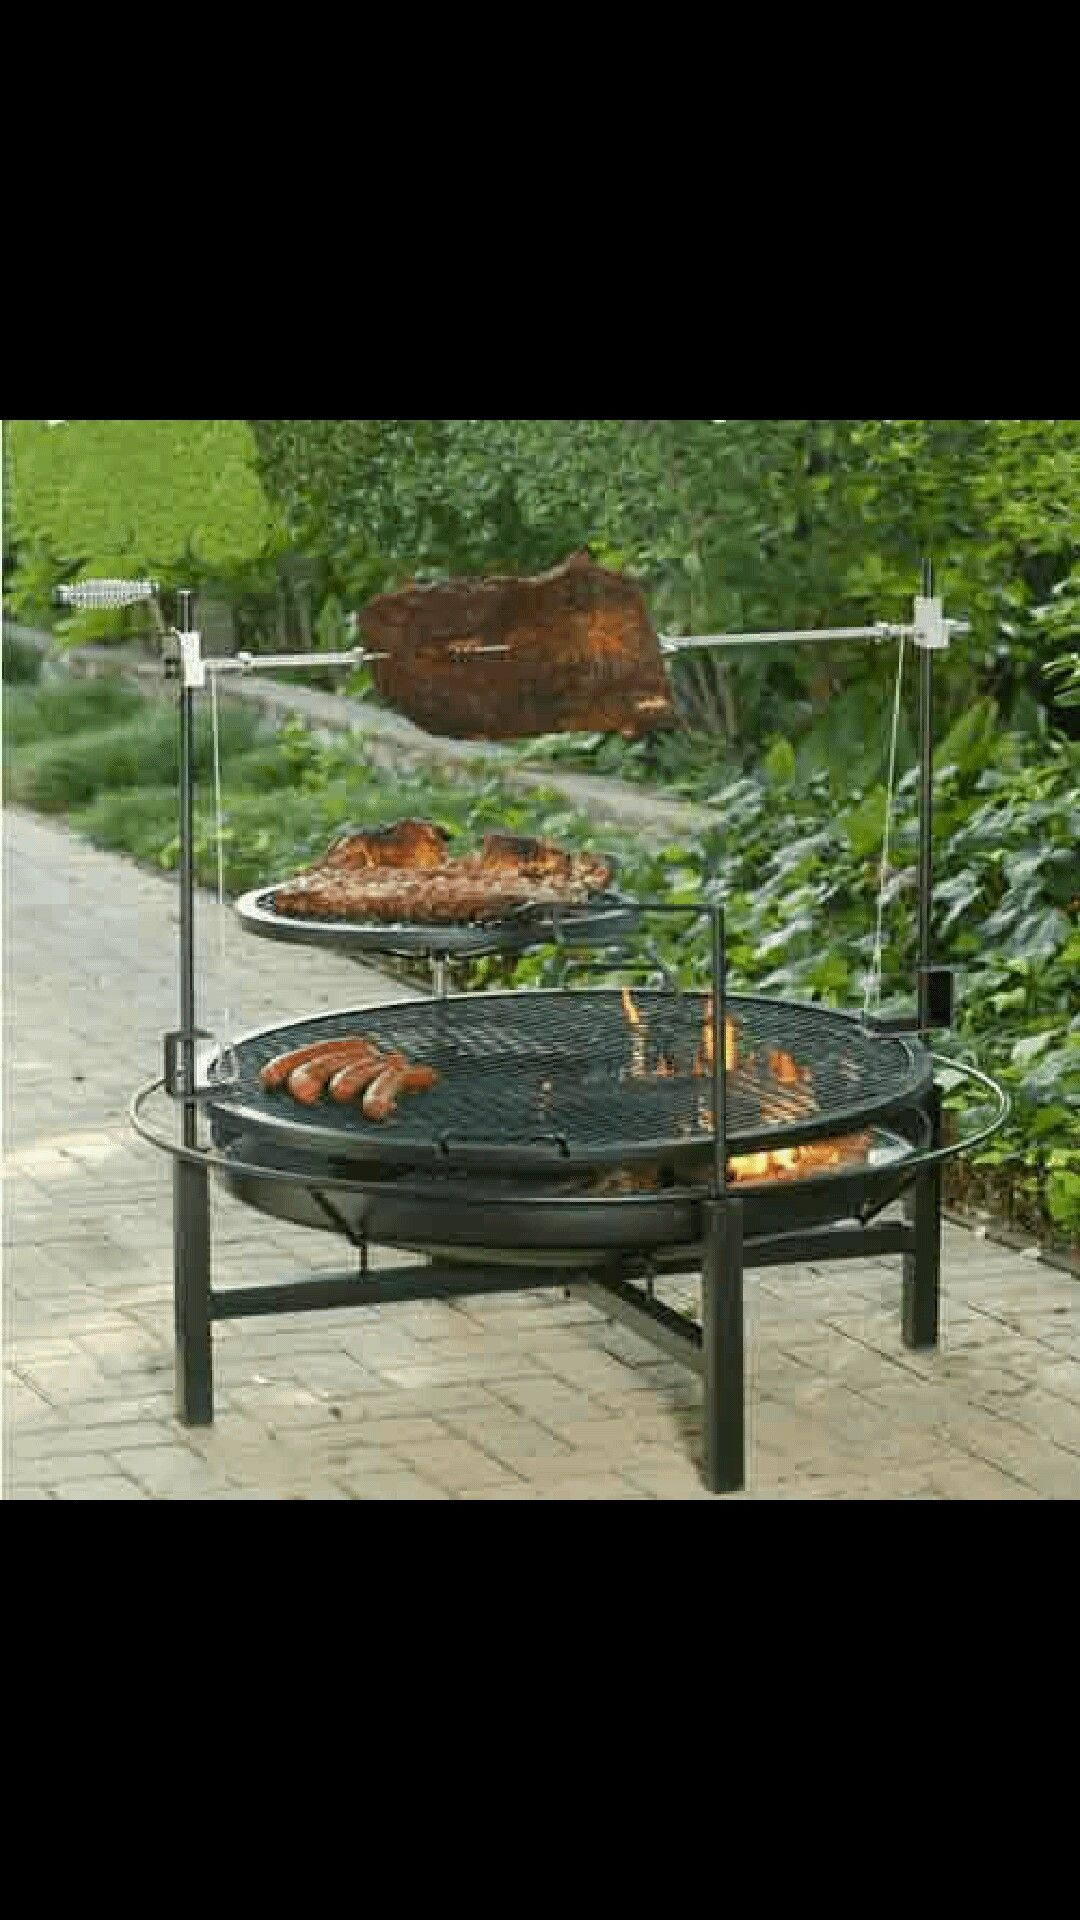 pin by sportex sp on fire pit grill pinterest fire pit grill